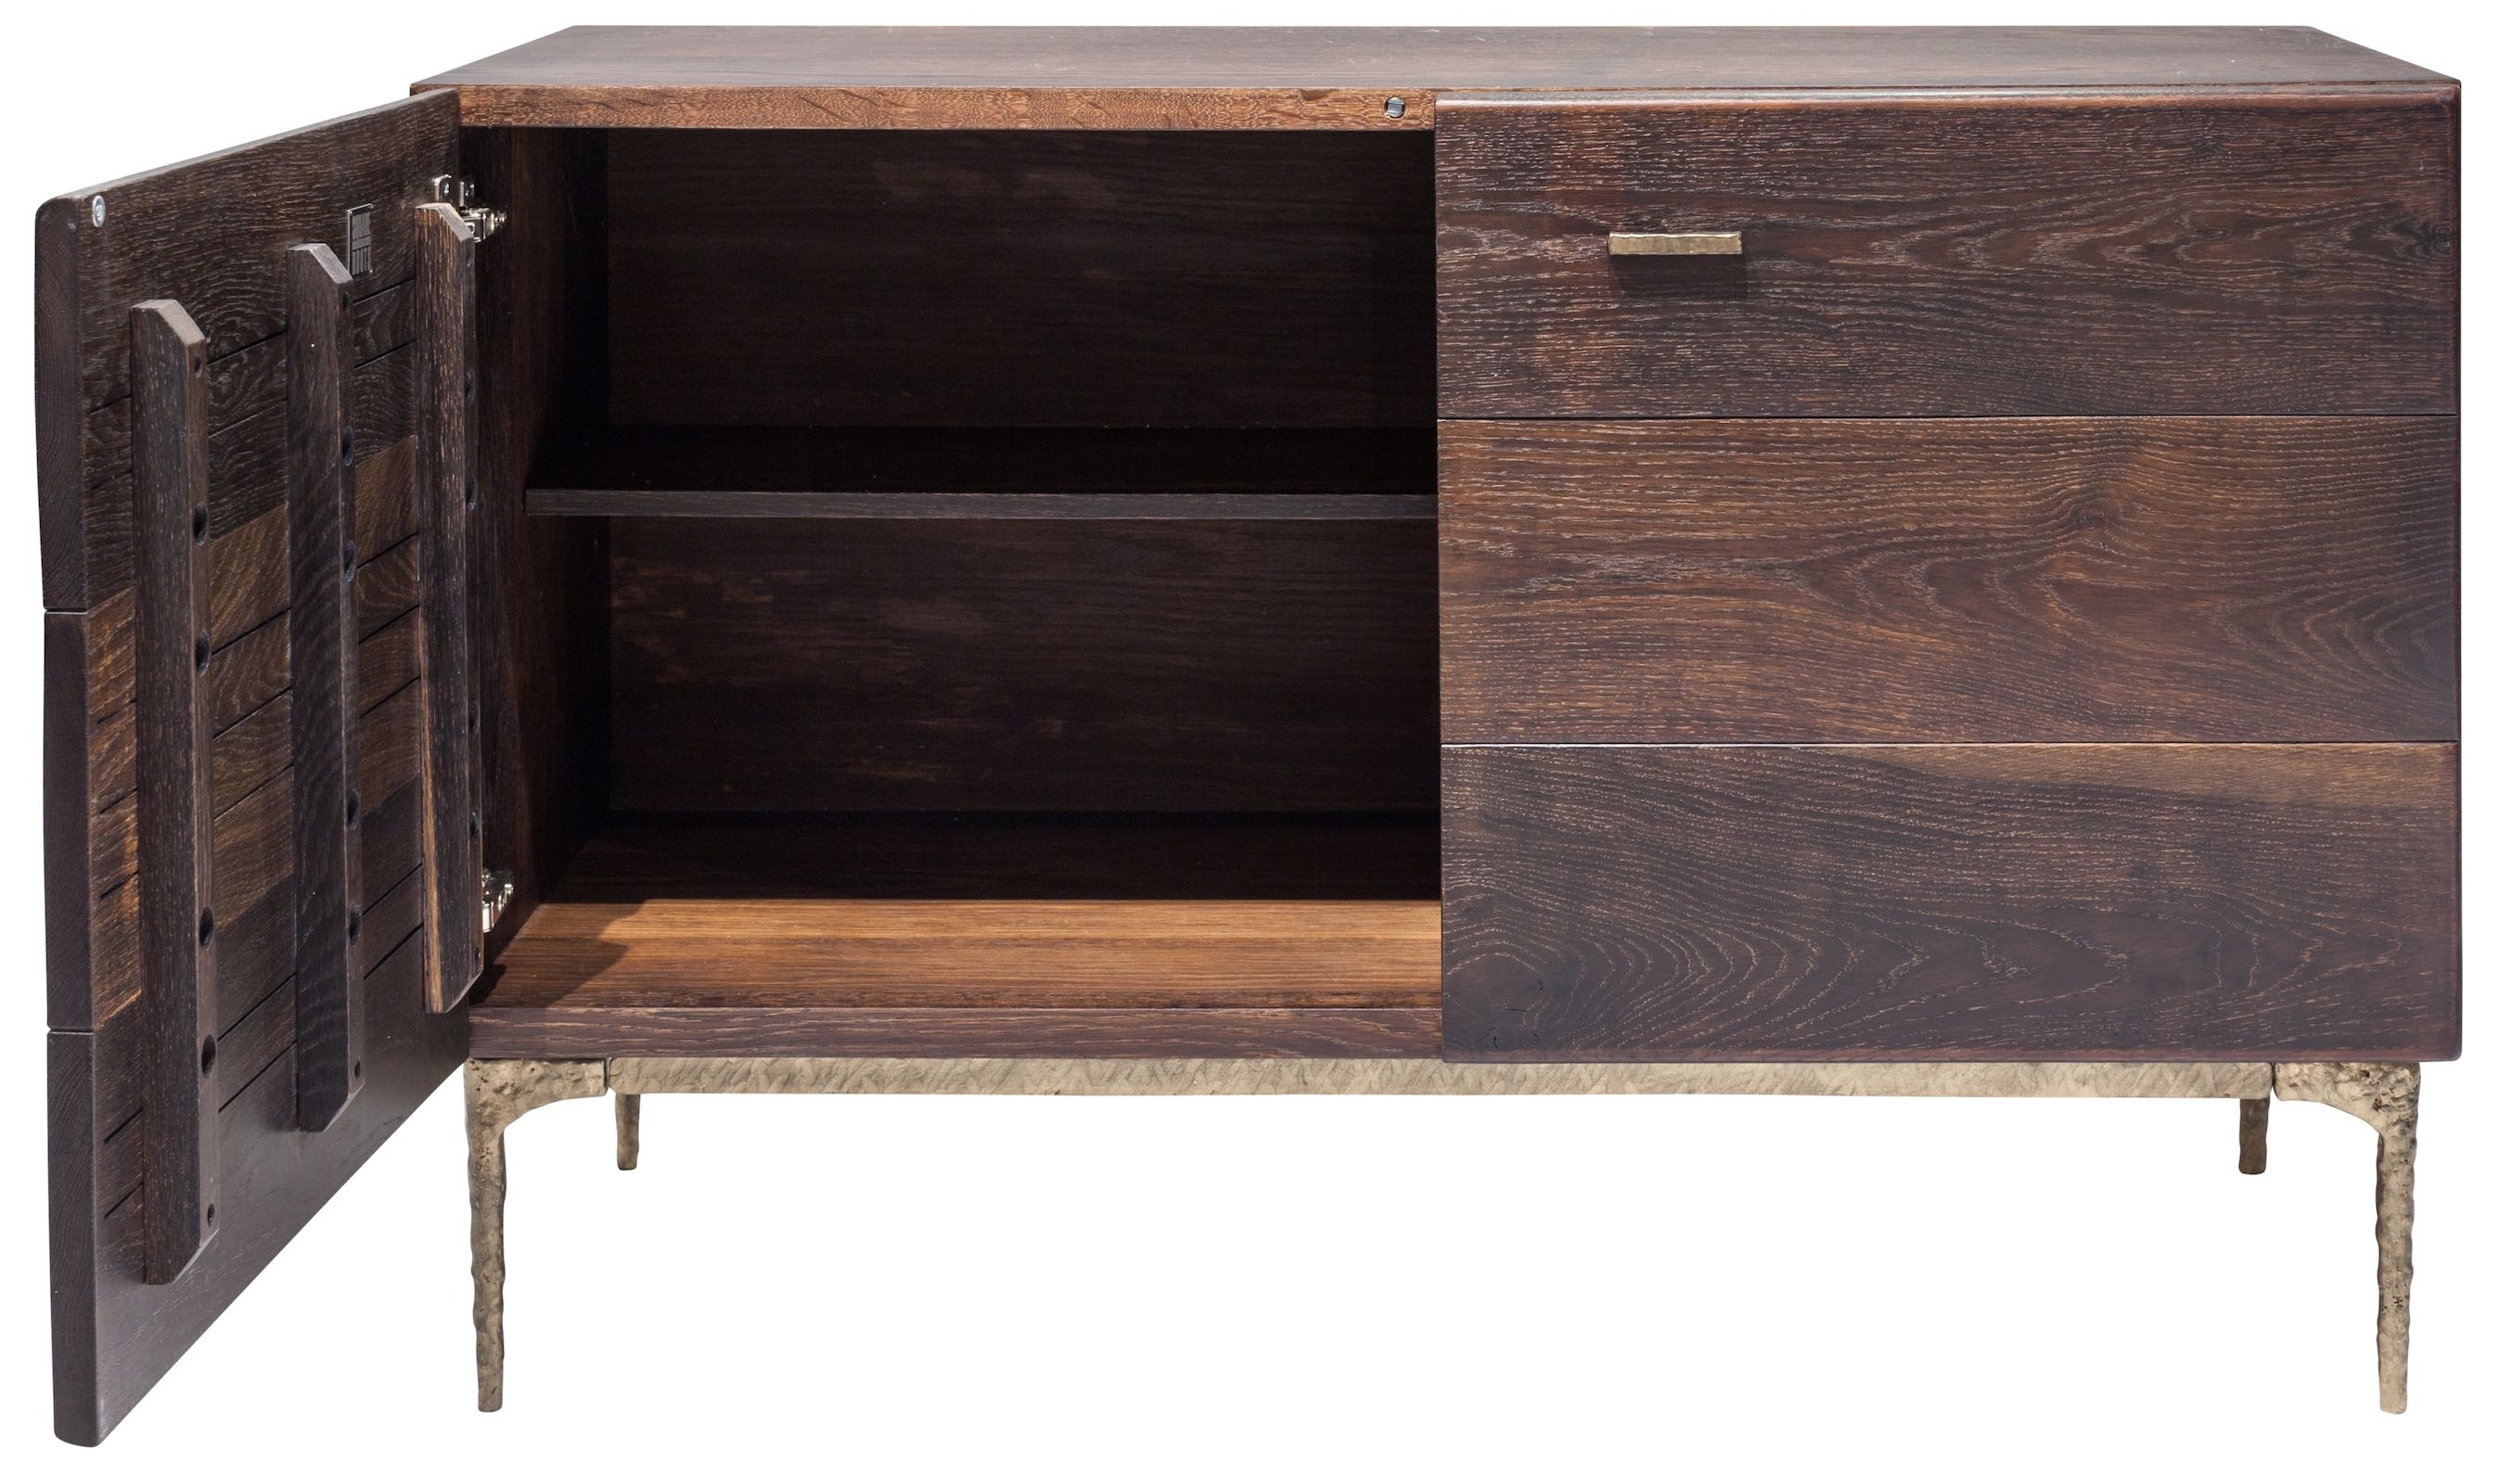 The Kulu Sideboard Buffet With Blackened Cast Iron Legs Features Fsc With Regard To Most Popular Black Oak Wood And Wrought Iron Sideboards (#18 of 20)